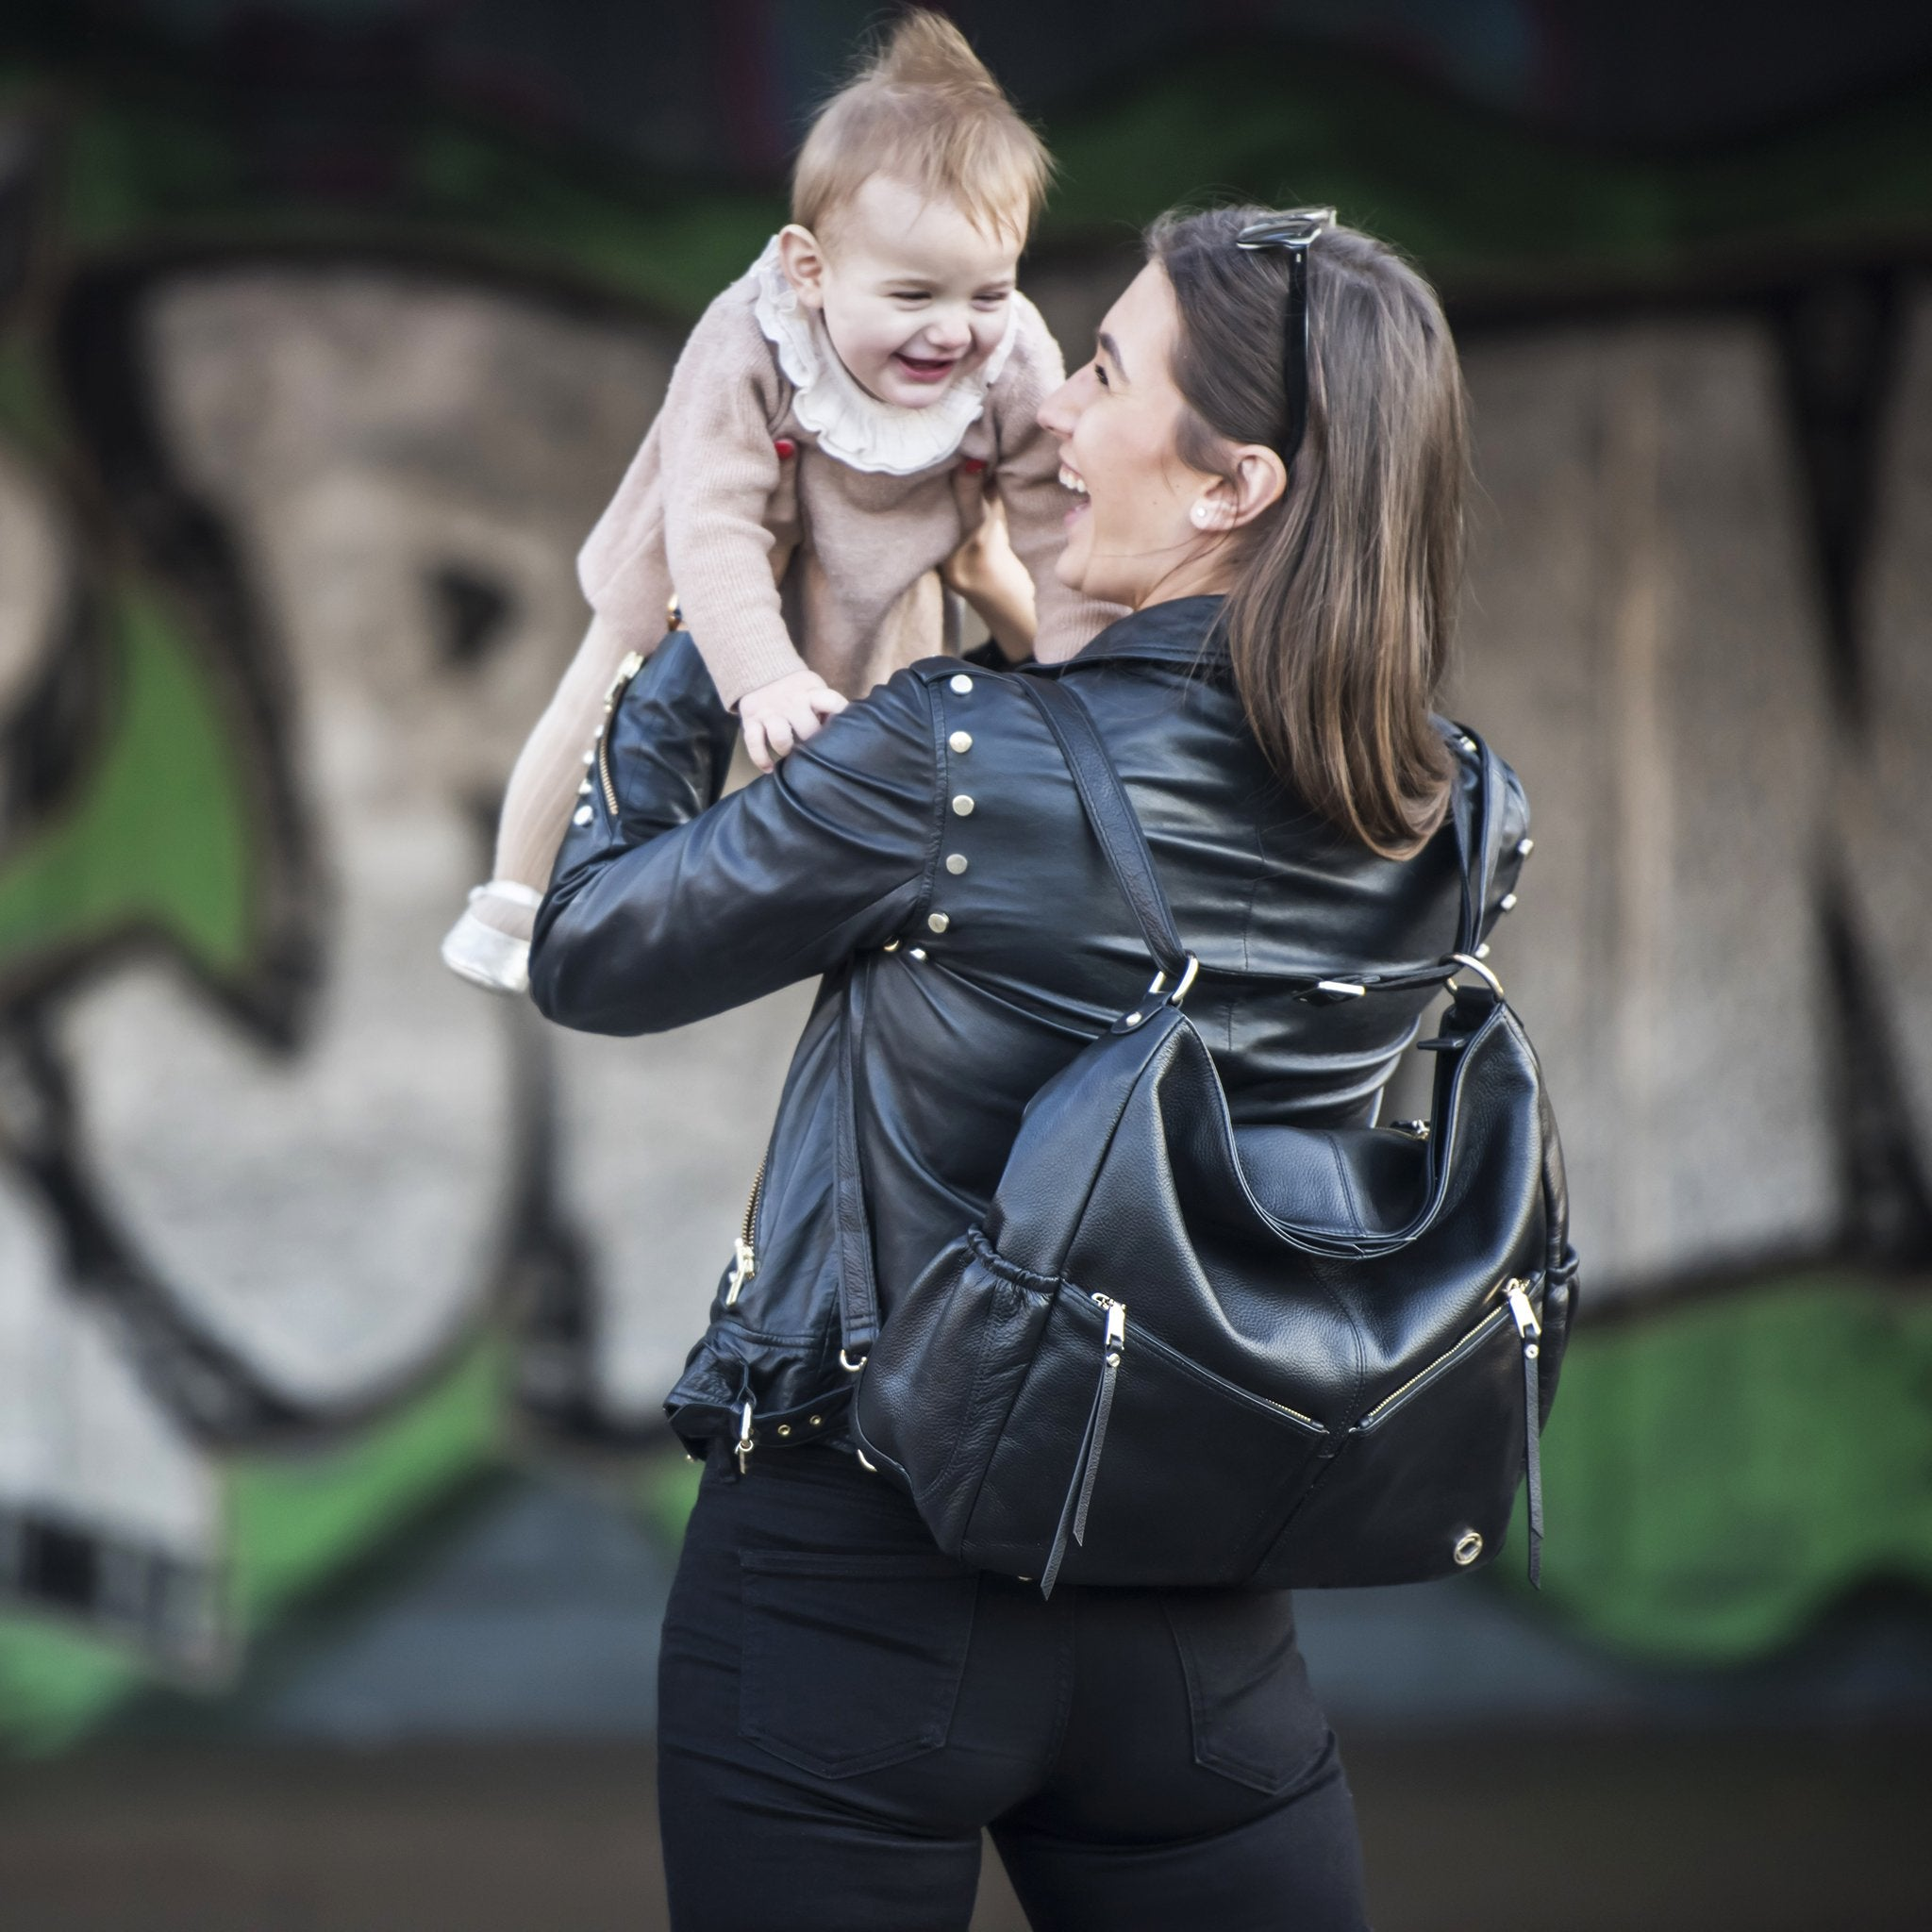 Lennox black leather changing bag. Image shows mother wearing black leather backpack with baby in arms.